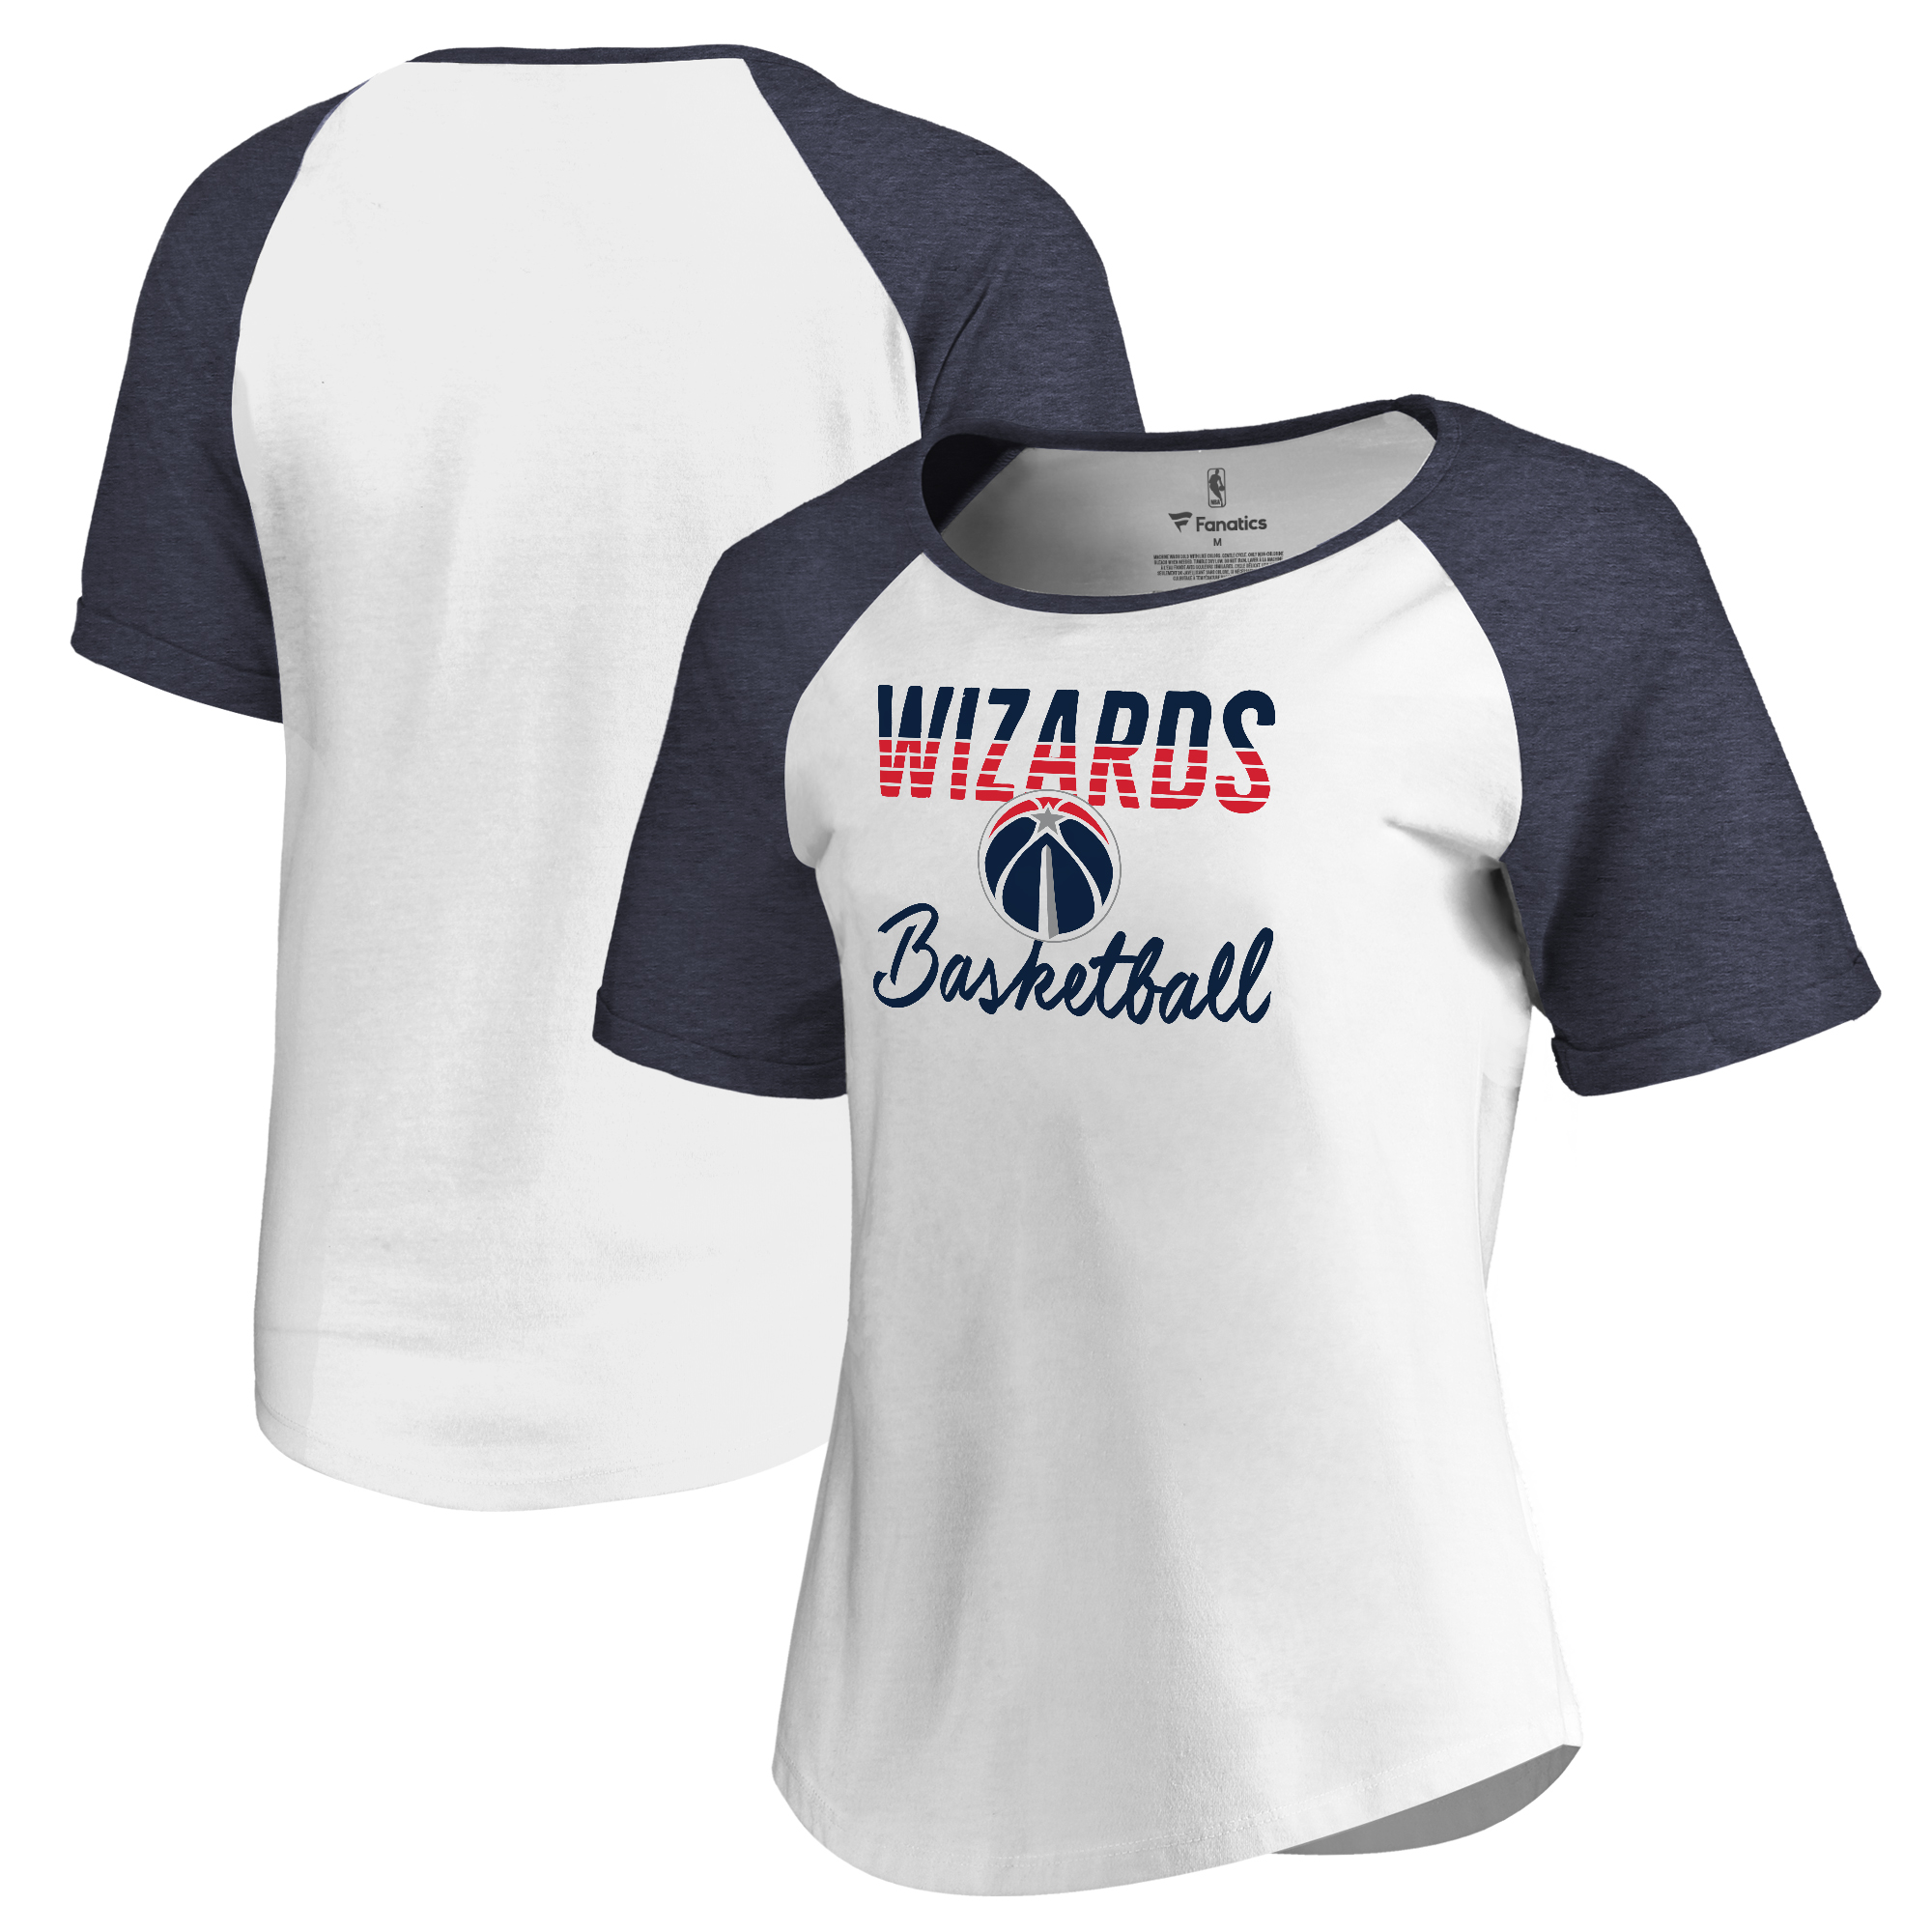 Washington Wizards Fanatics Branded Women's Free Line Raglan Scoop Neck Tri-Blend T-Shirt - White/Navy